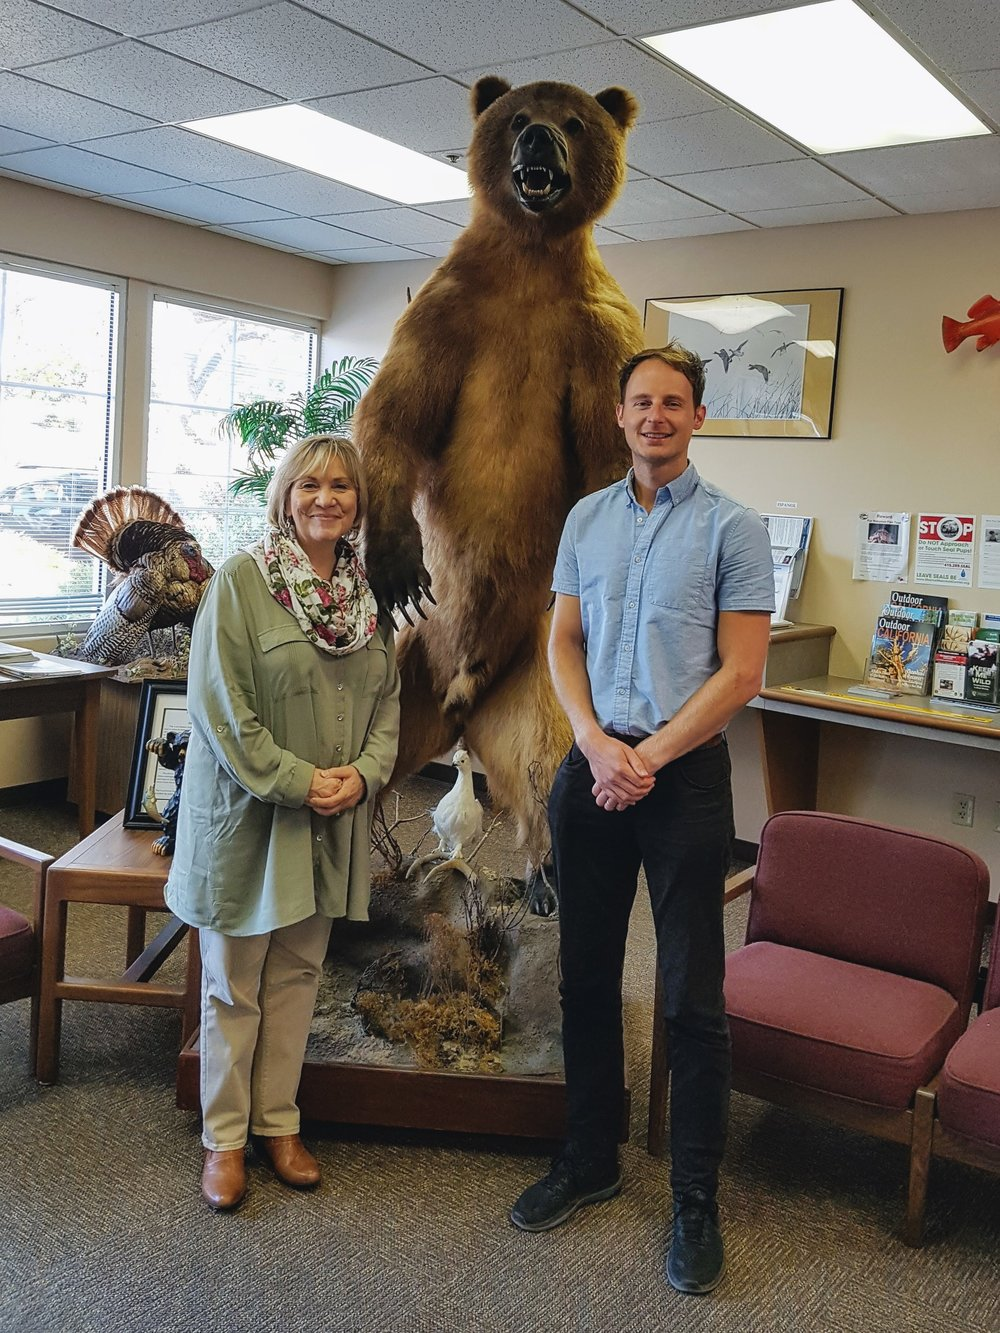 Becky Ota and bear (and me). Welcome to California Fish and Wildlife HQ!